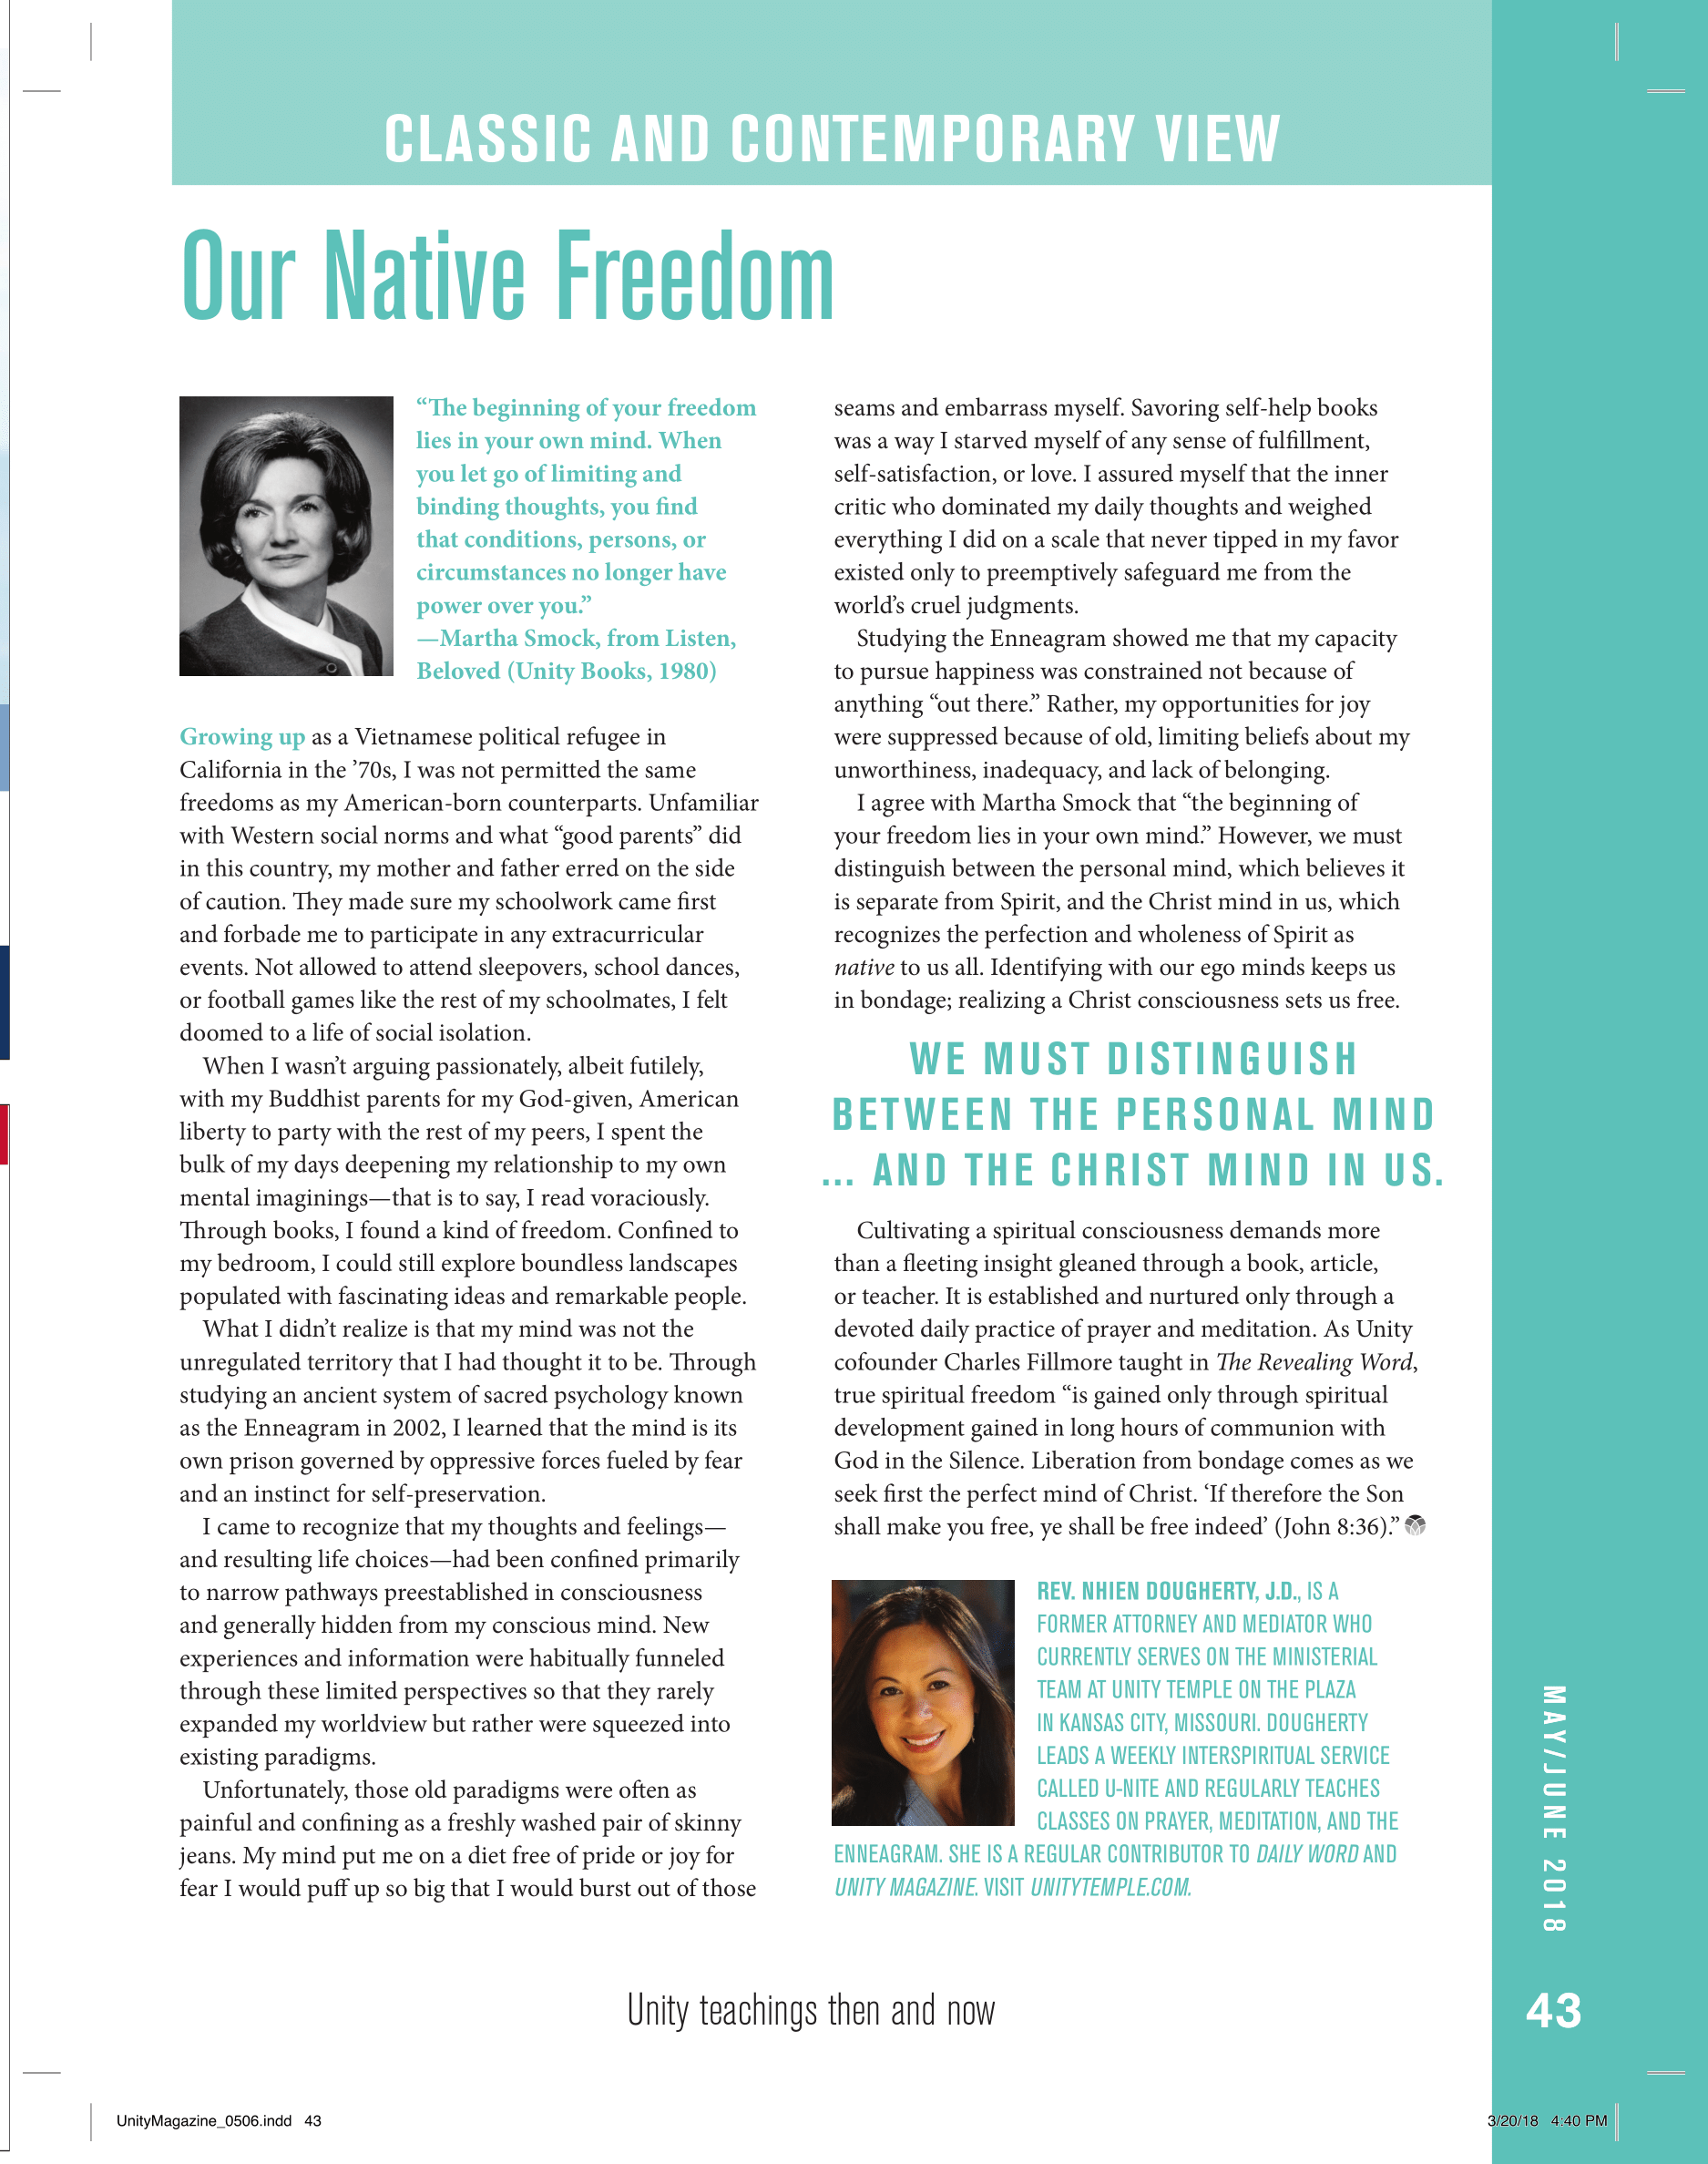 rev-nhien-vuong-dougherty-our-native-freedom.png